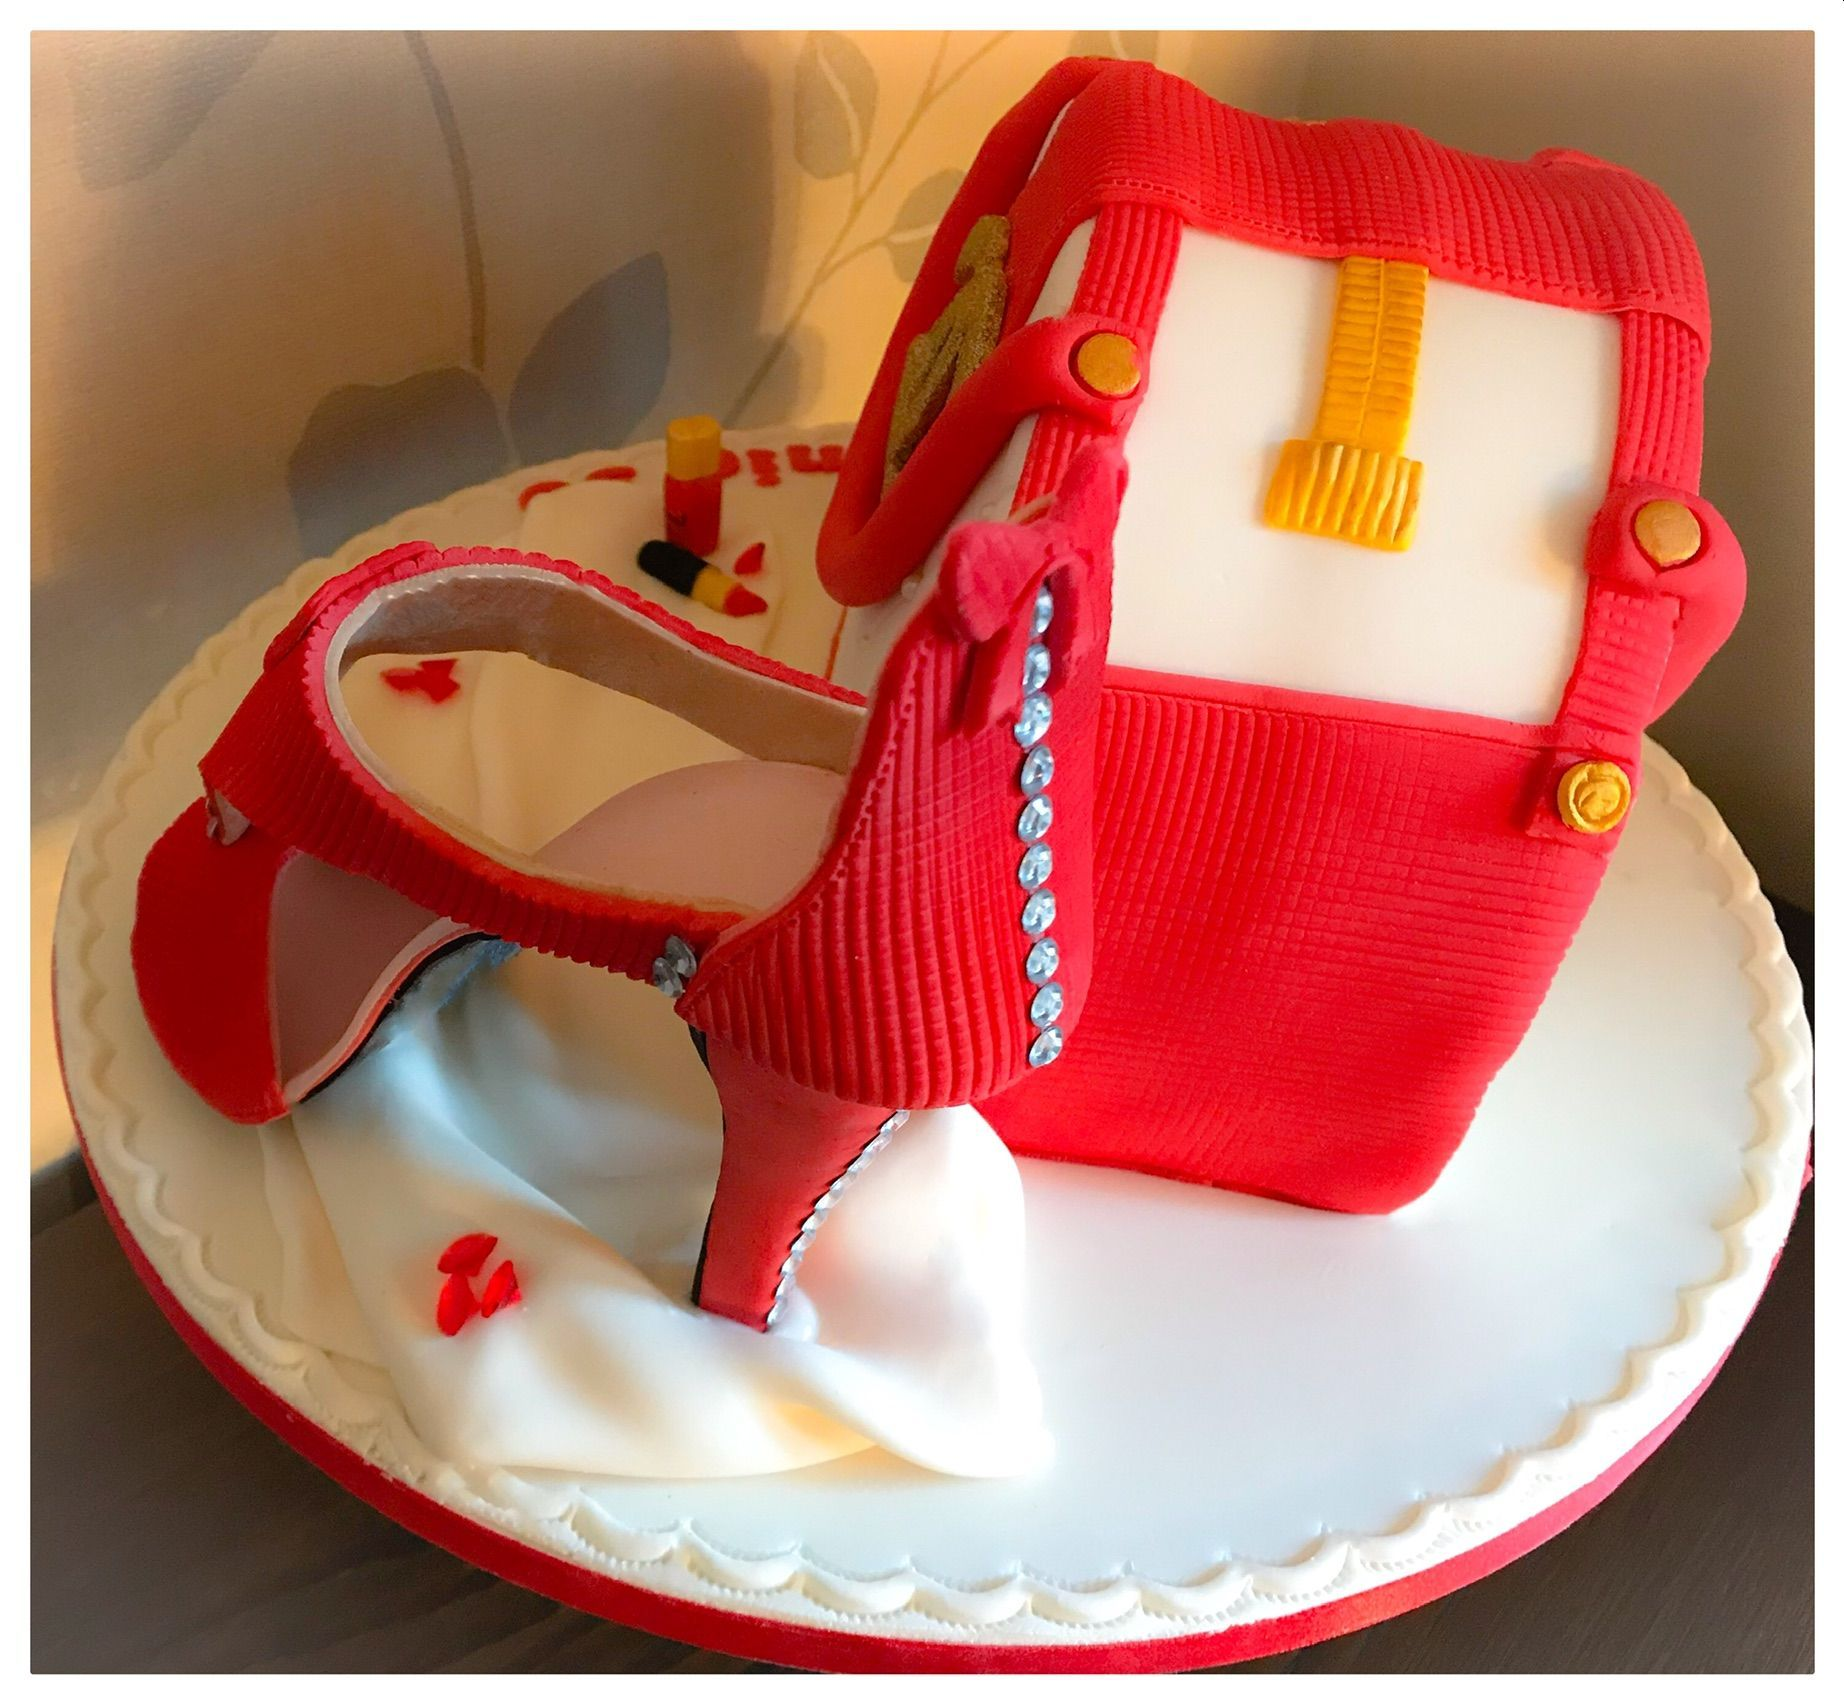 chanel handbag and shoe cake 1